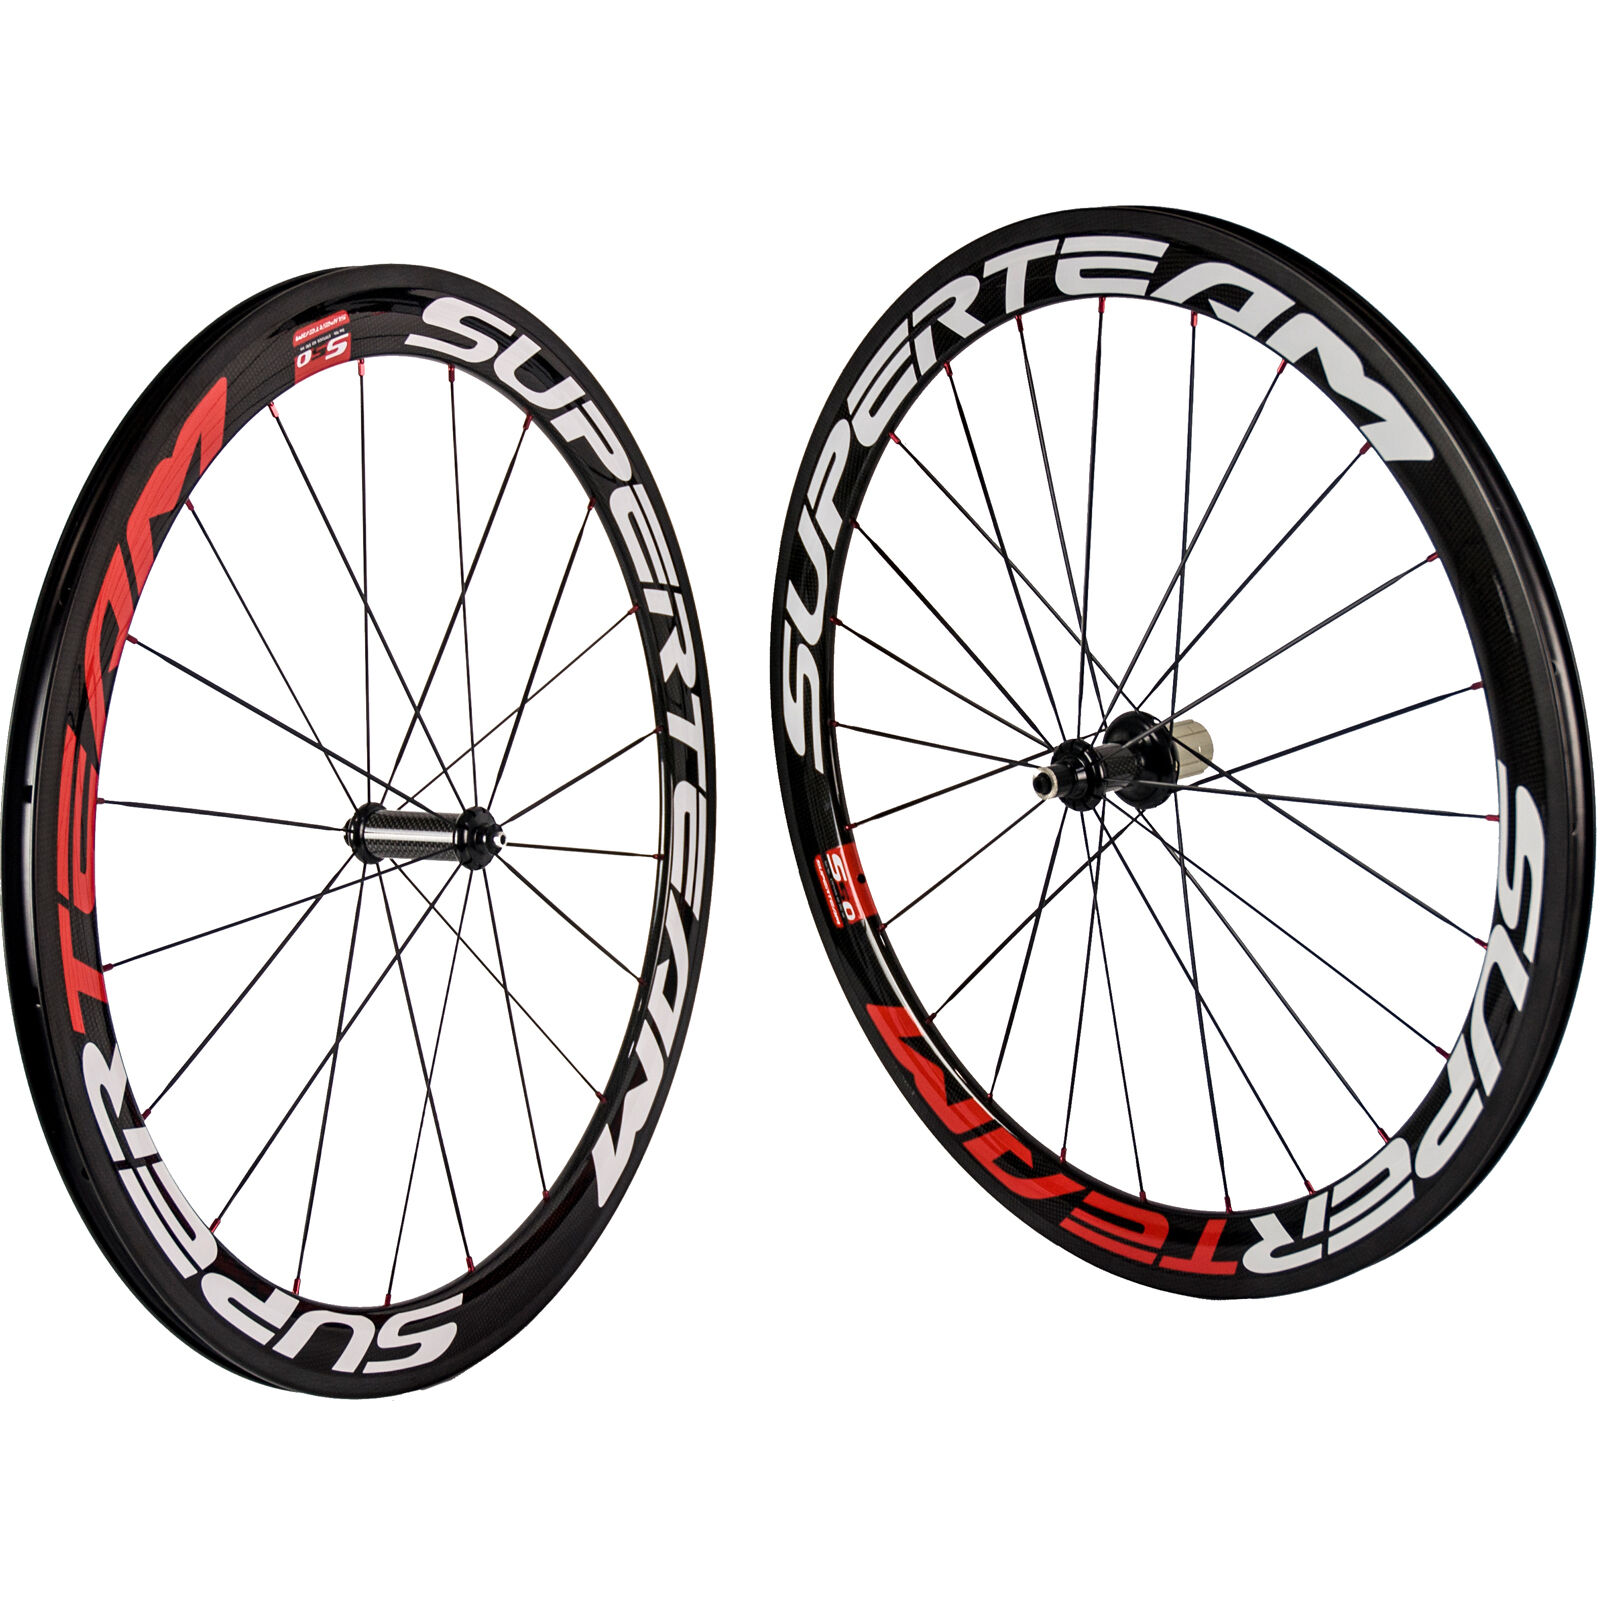 SUPERTEAM Bicycle  Carbon Wheelset Clincher Red Nipple 50mm R36 Carbon Bike Wheel  online shopping